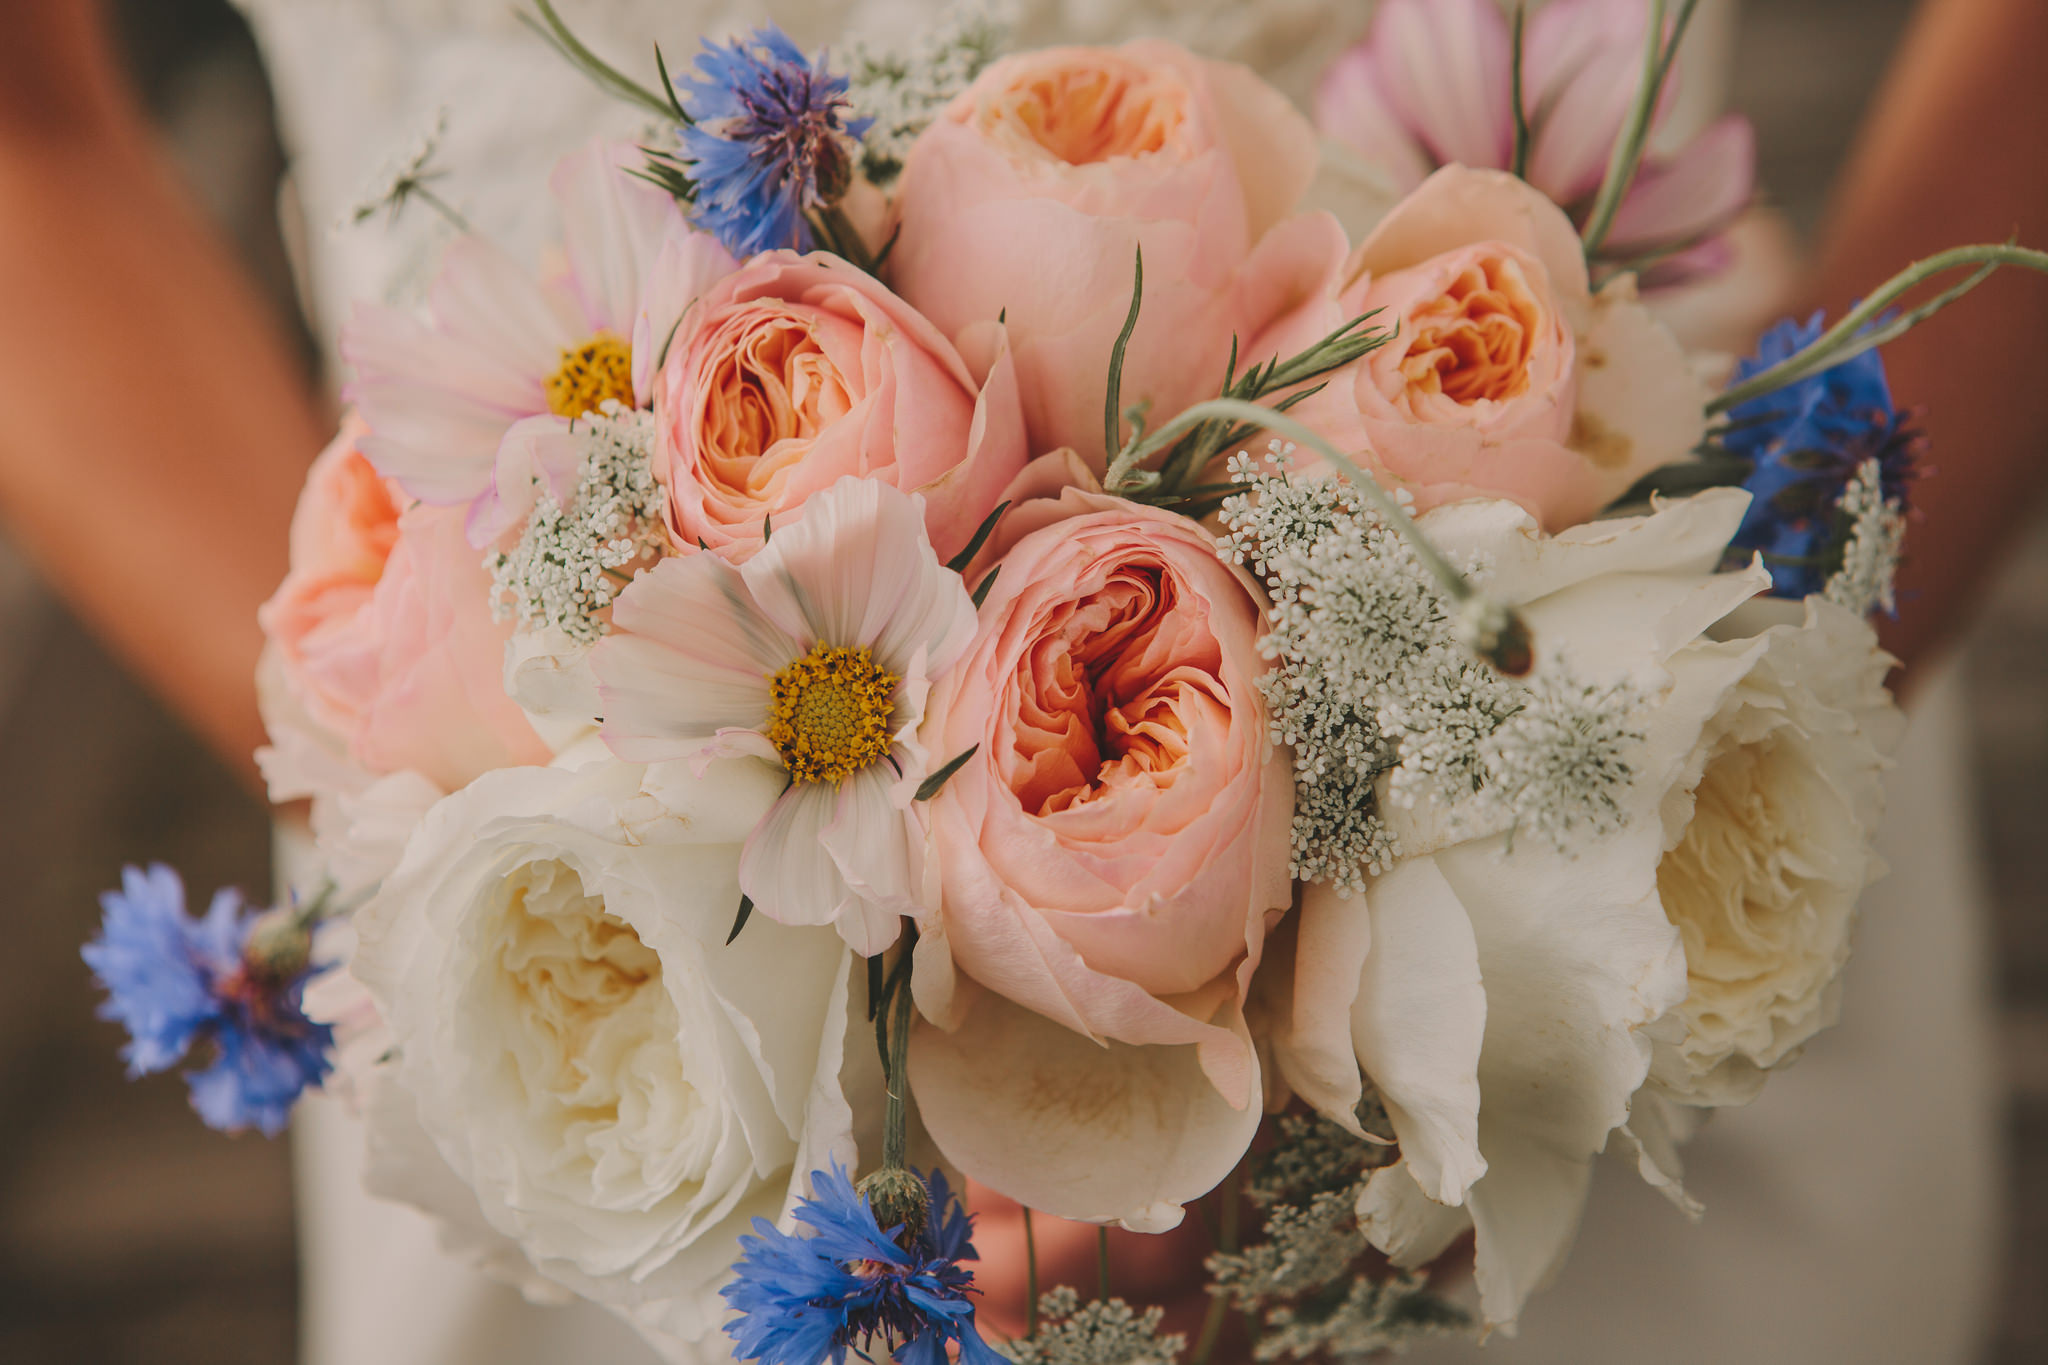 DIY Wedding Bouquet Basics, From Start To Finish - BridalPulse